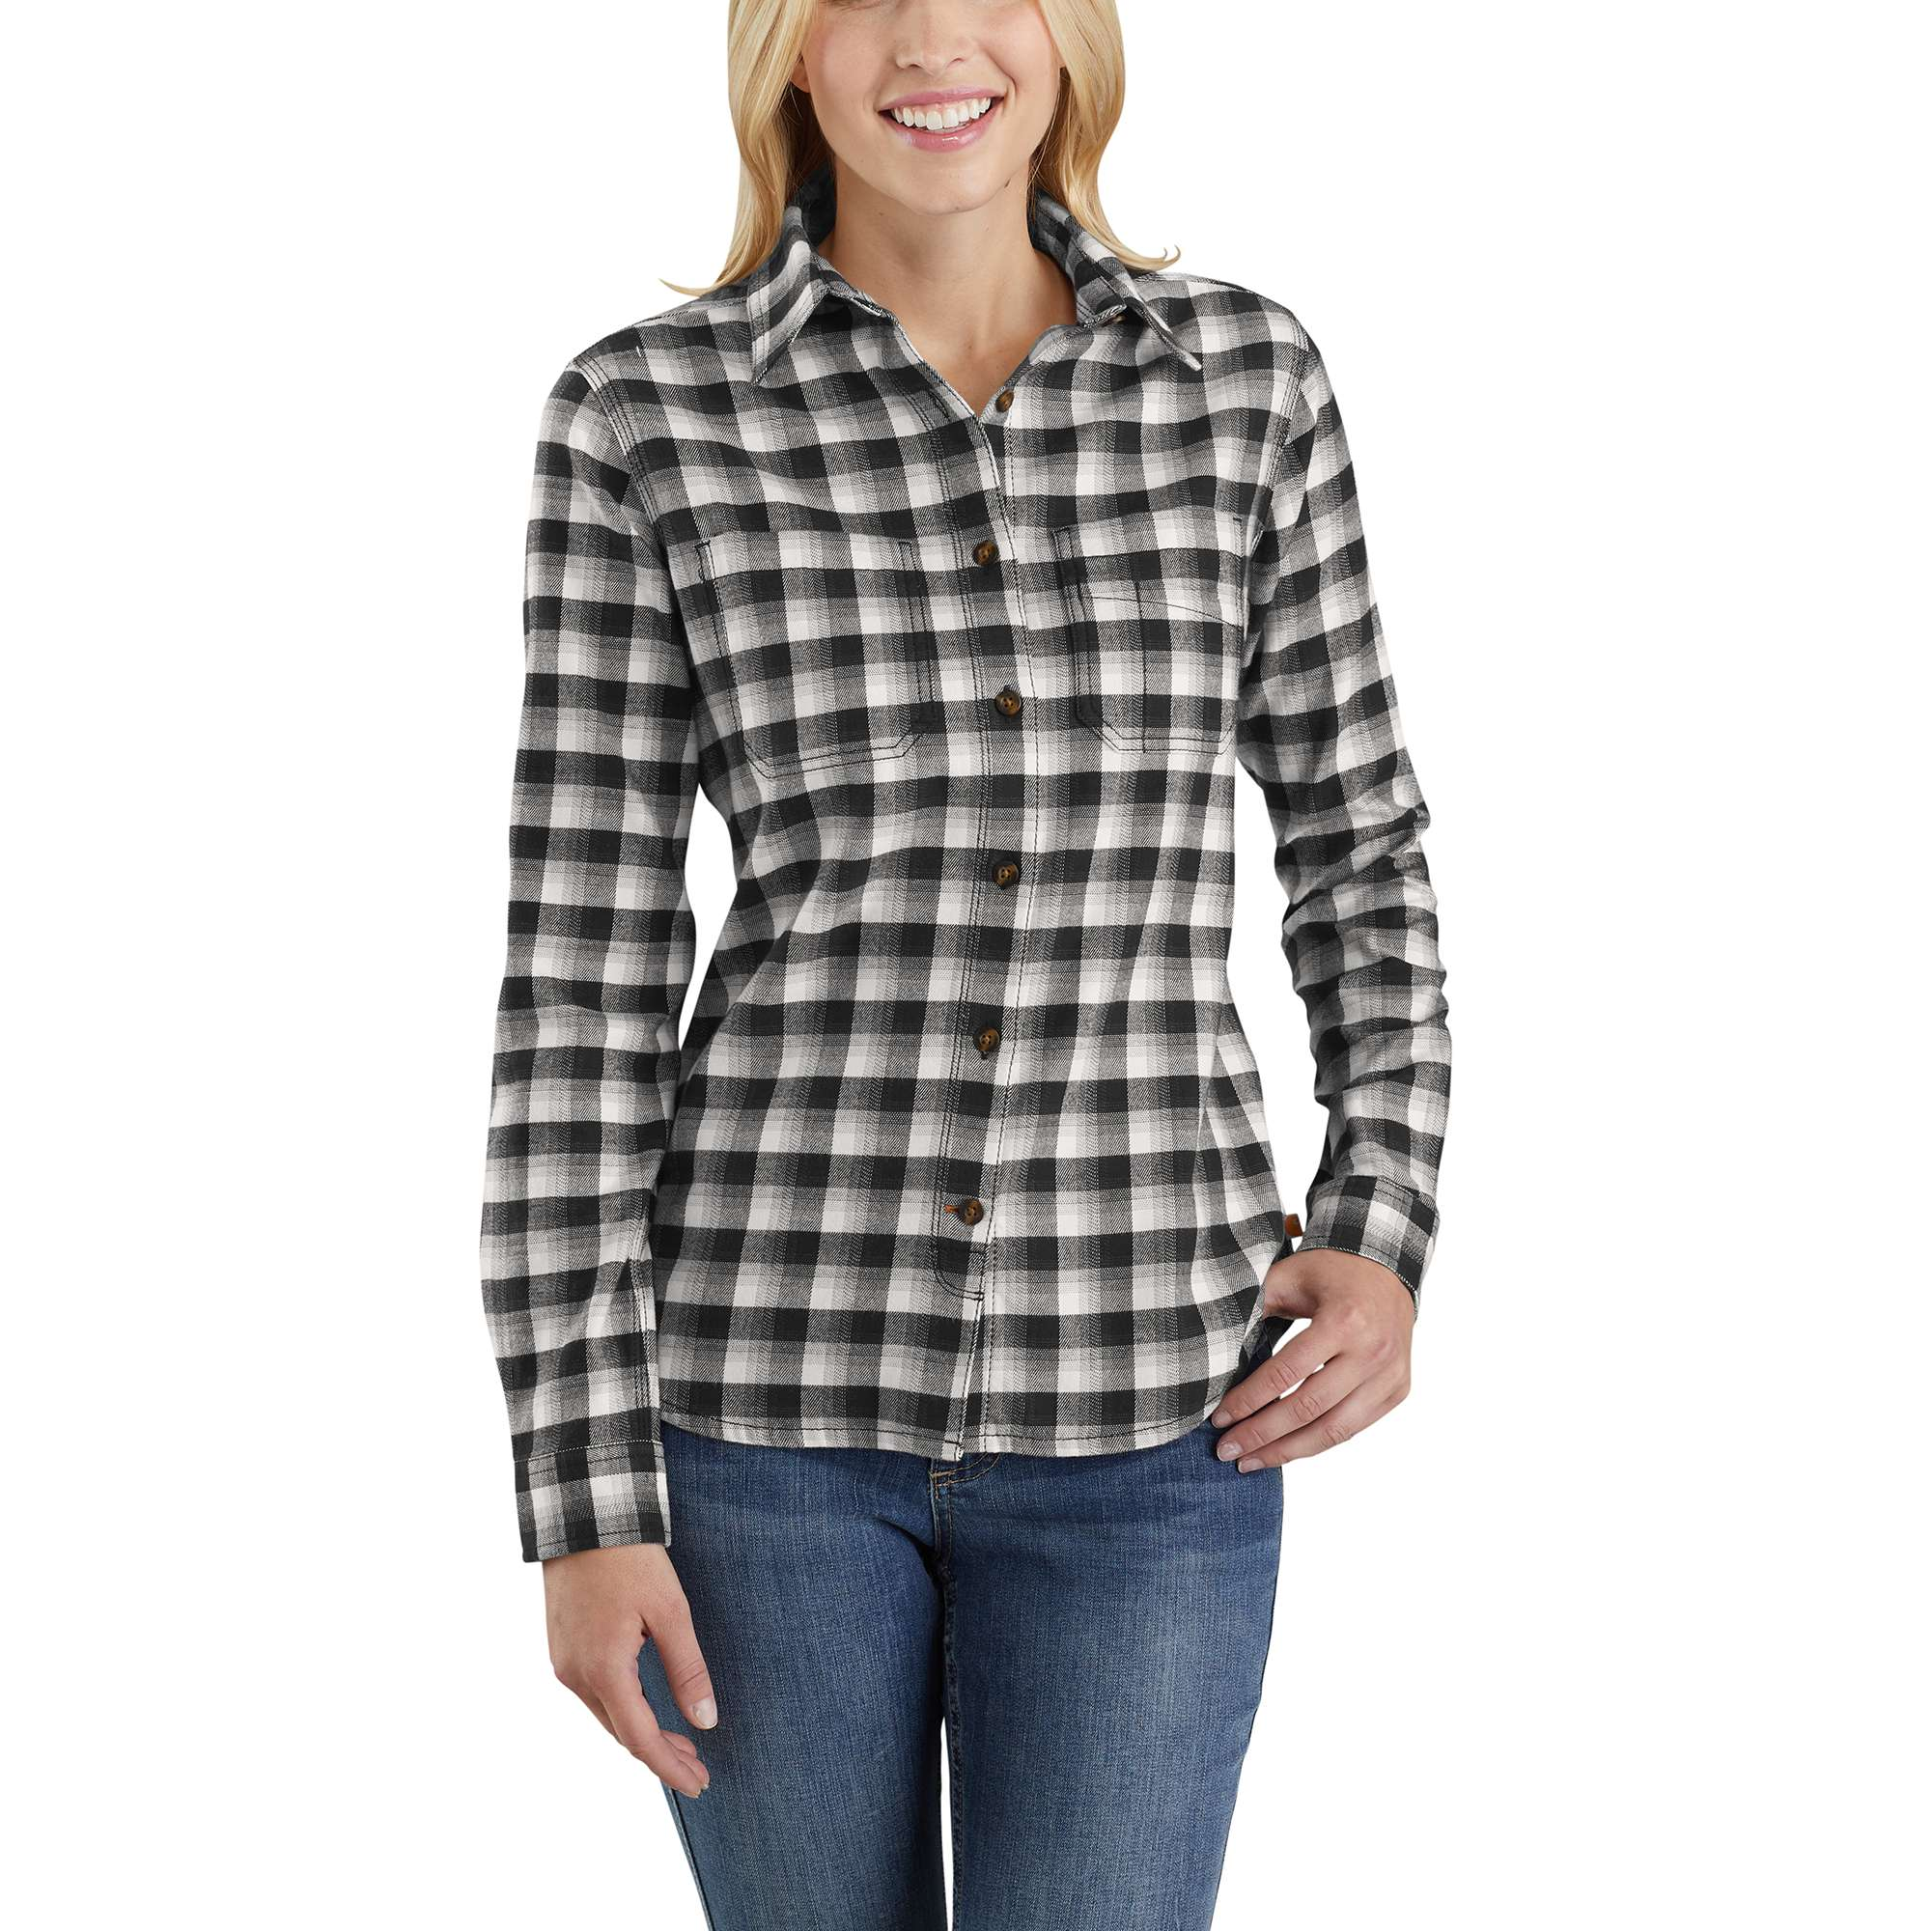 6ad9bb8f1664 Women s Rugged Flex® Hamilton Flannel Shirt 103226